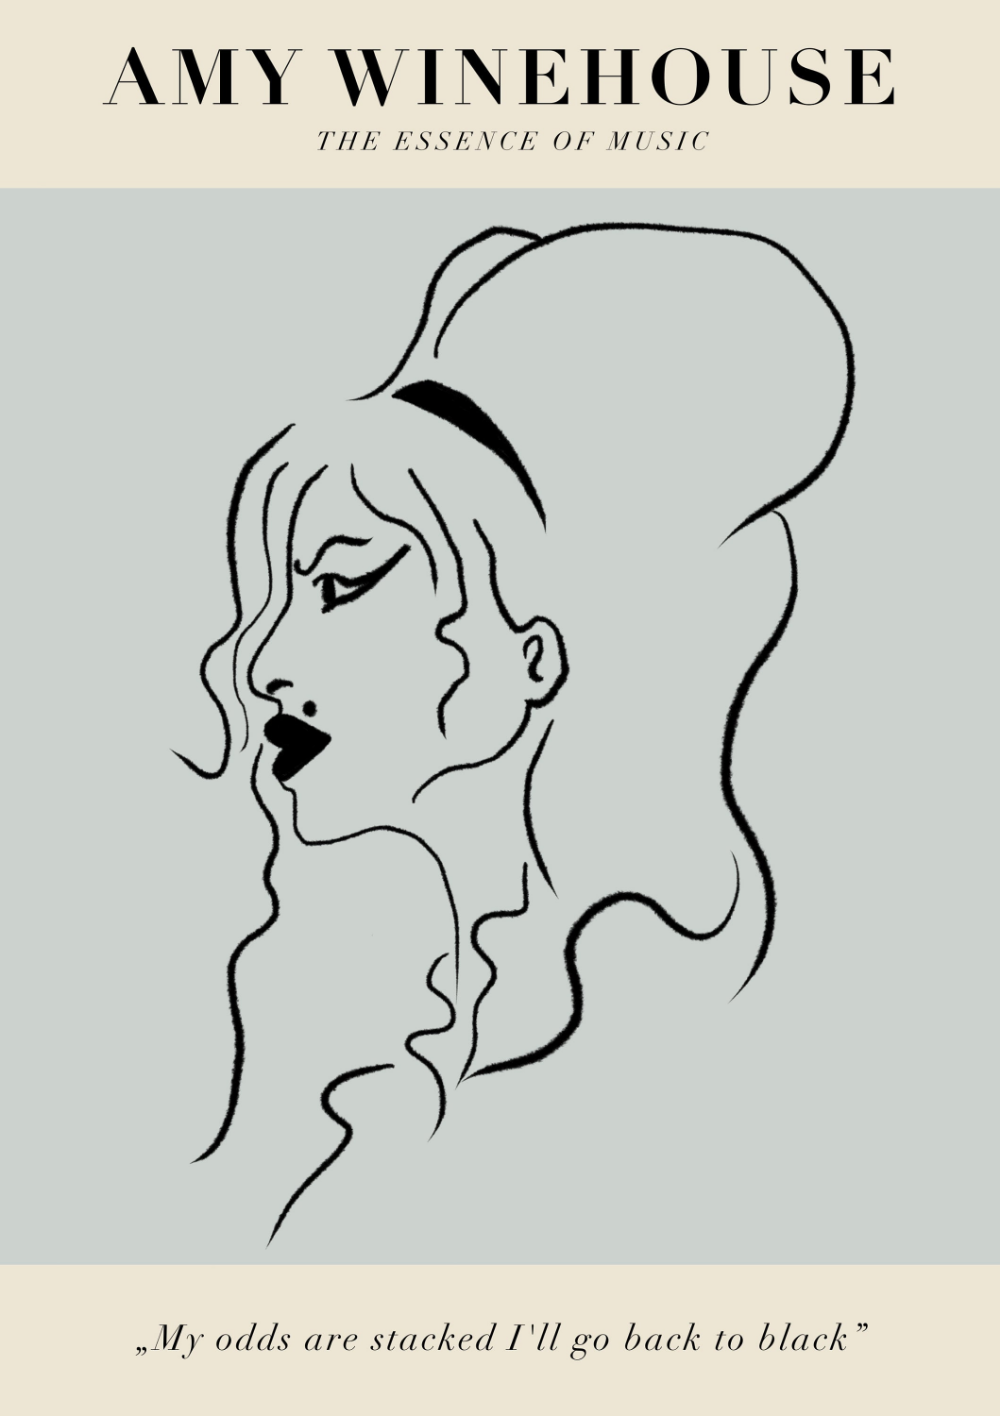 Pin By Syd F On Prints And Posters Amy Winehouse Matisse Art Music Wall Art